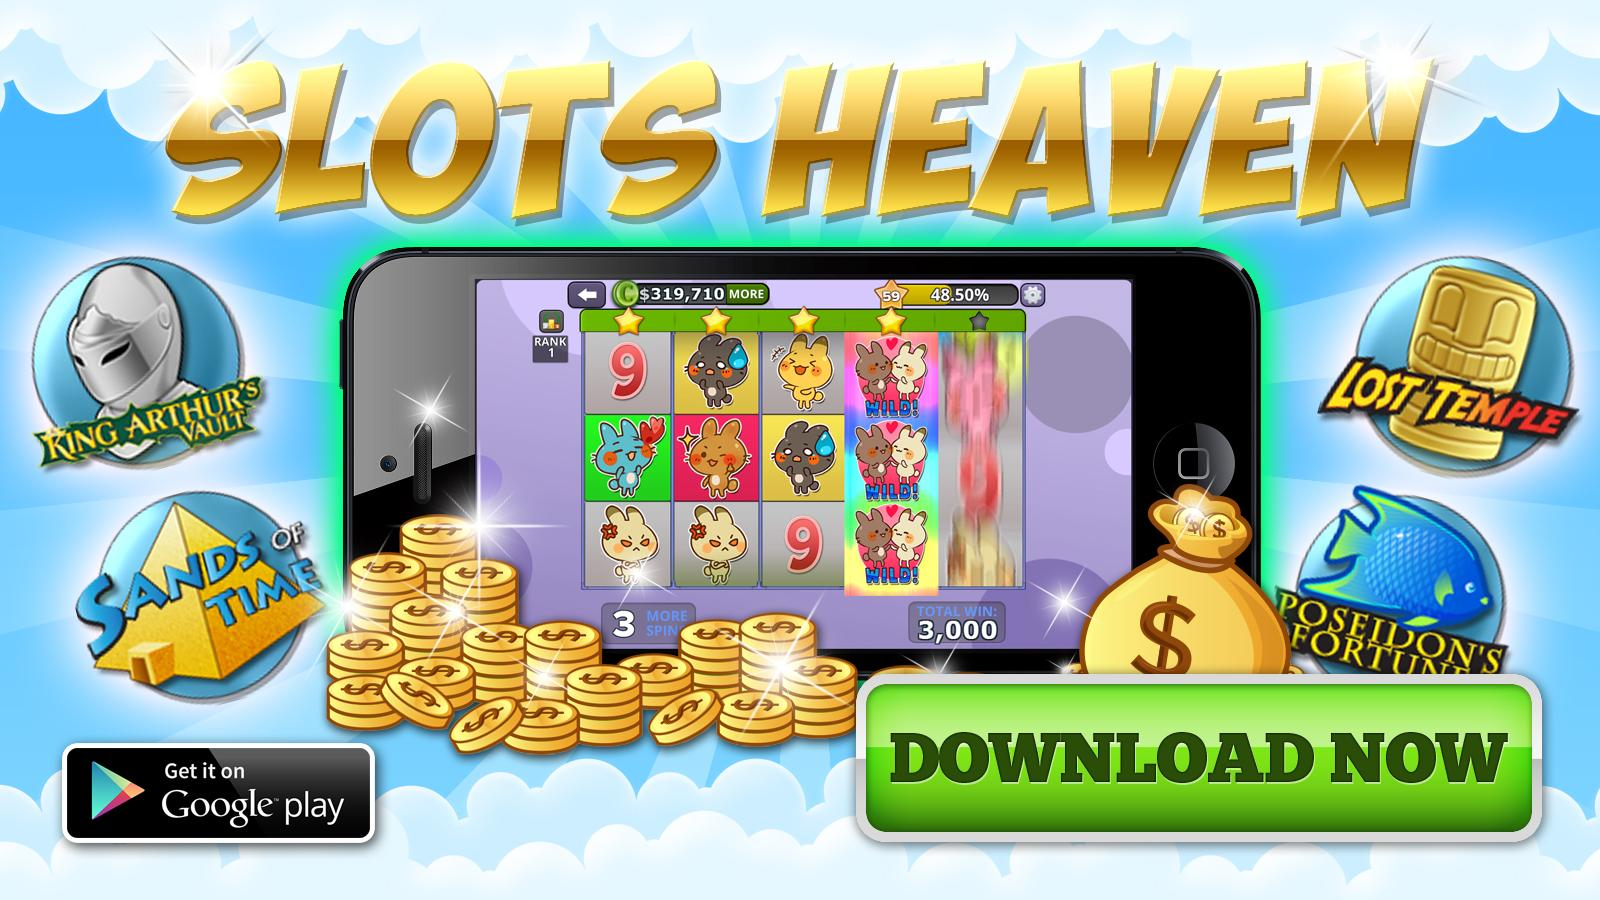 SLOTS Heaven - Win 1,000,000 Coins FREE in Slots!- screenshot